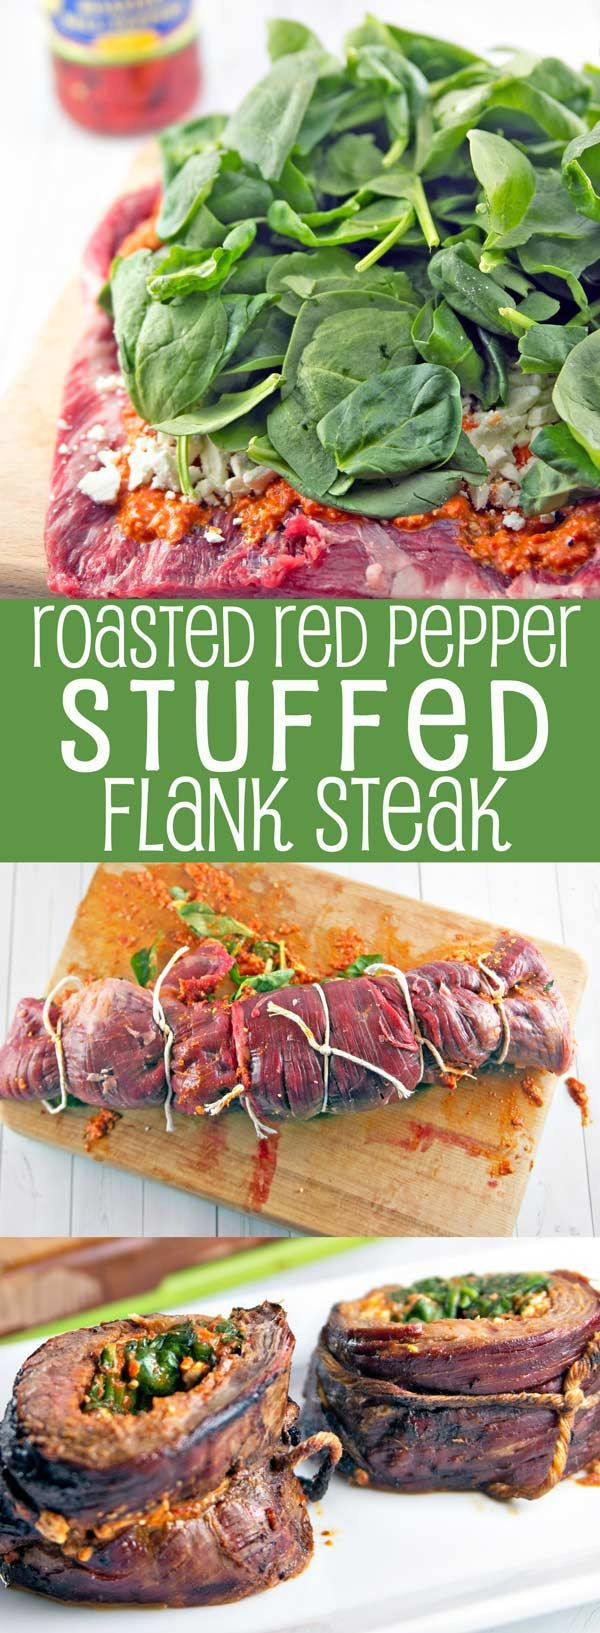 Roasted Red Pepper Stuffed Flank Steak: Stuck in a grilling rut?  Shake things up with the bold, bright flavors of a Mediterranean-inspired stuffed flank steak, starring roasted red pepper pesto, feta, and spinach. #ad https://ooh.li/21ca3ca